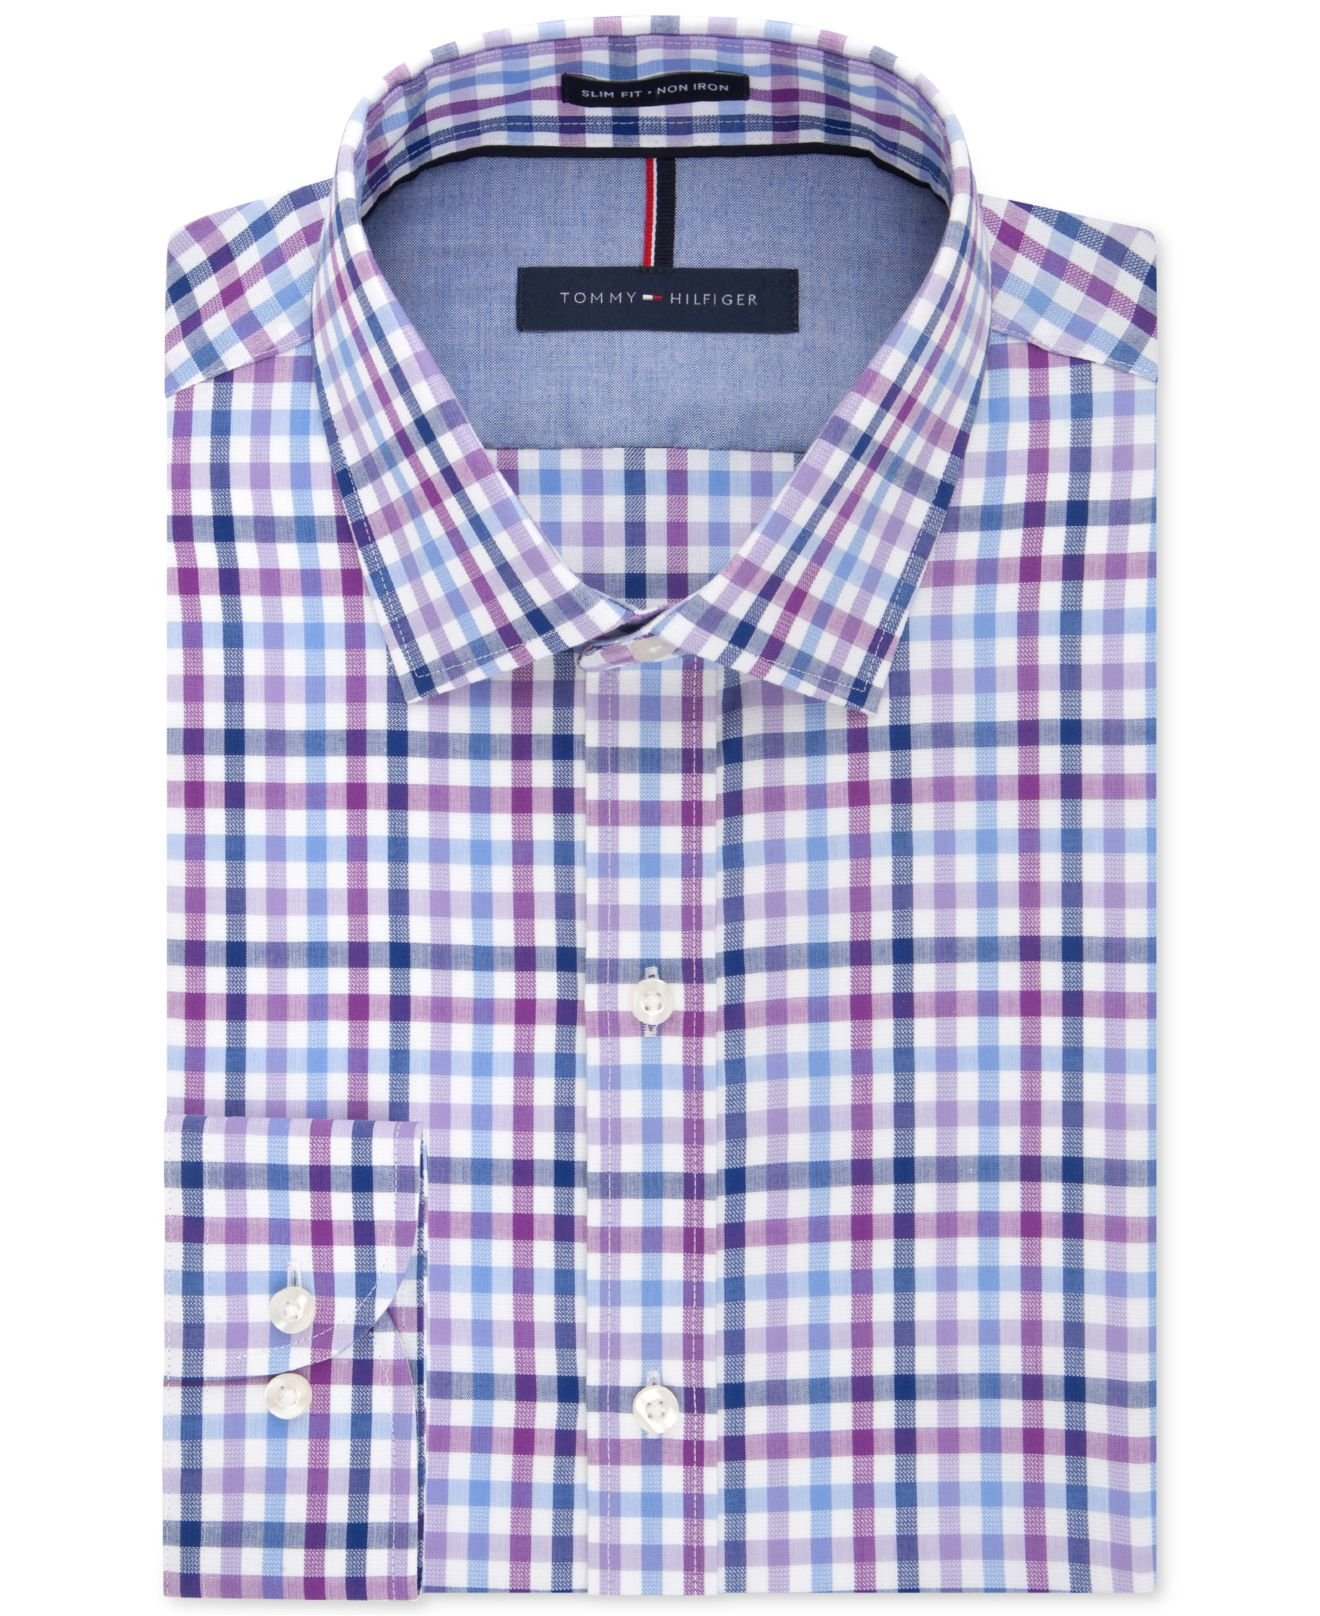 941f54499 Tommy Hilfiger Slim-fit Non-iron Blue Violet Gingham Dress Shirt for ...